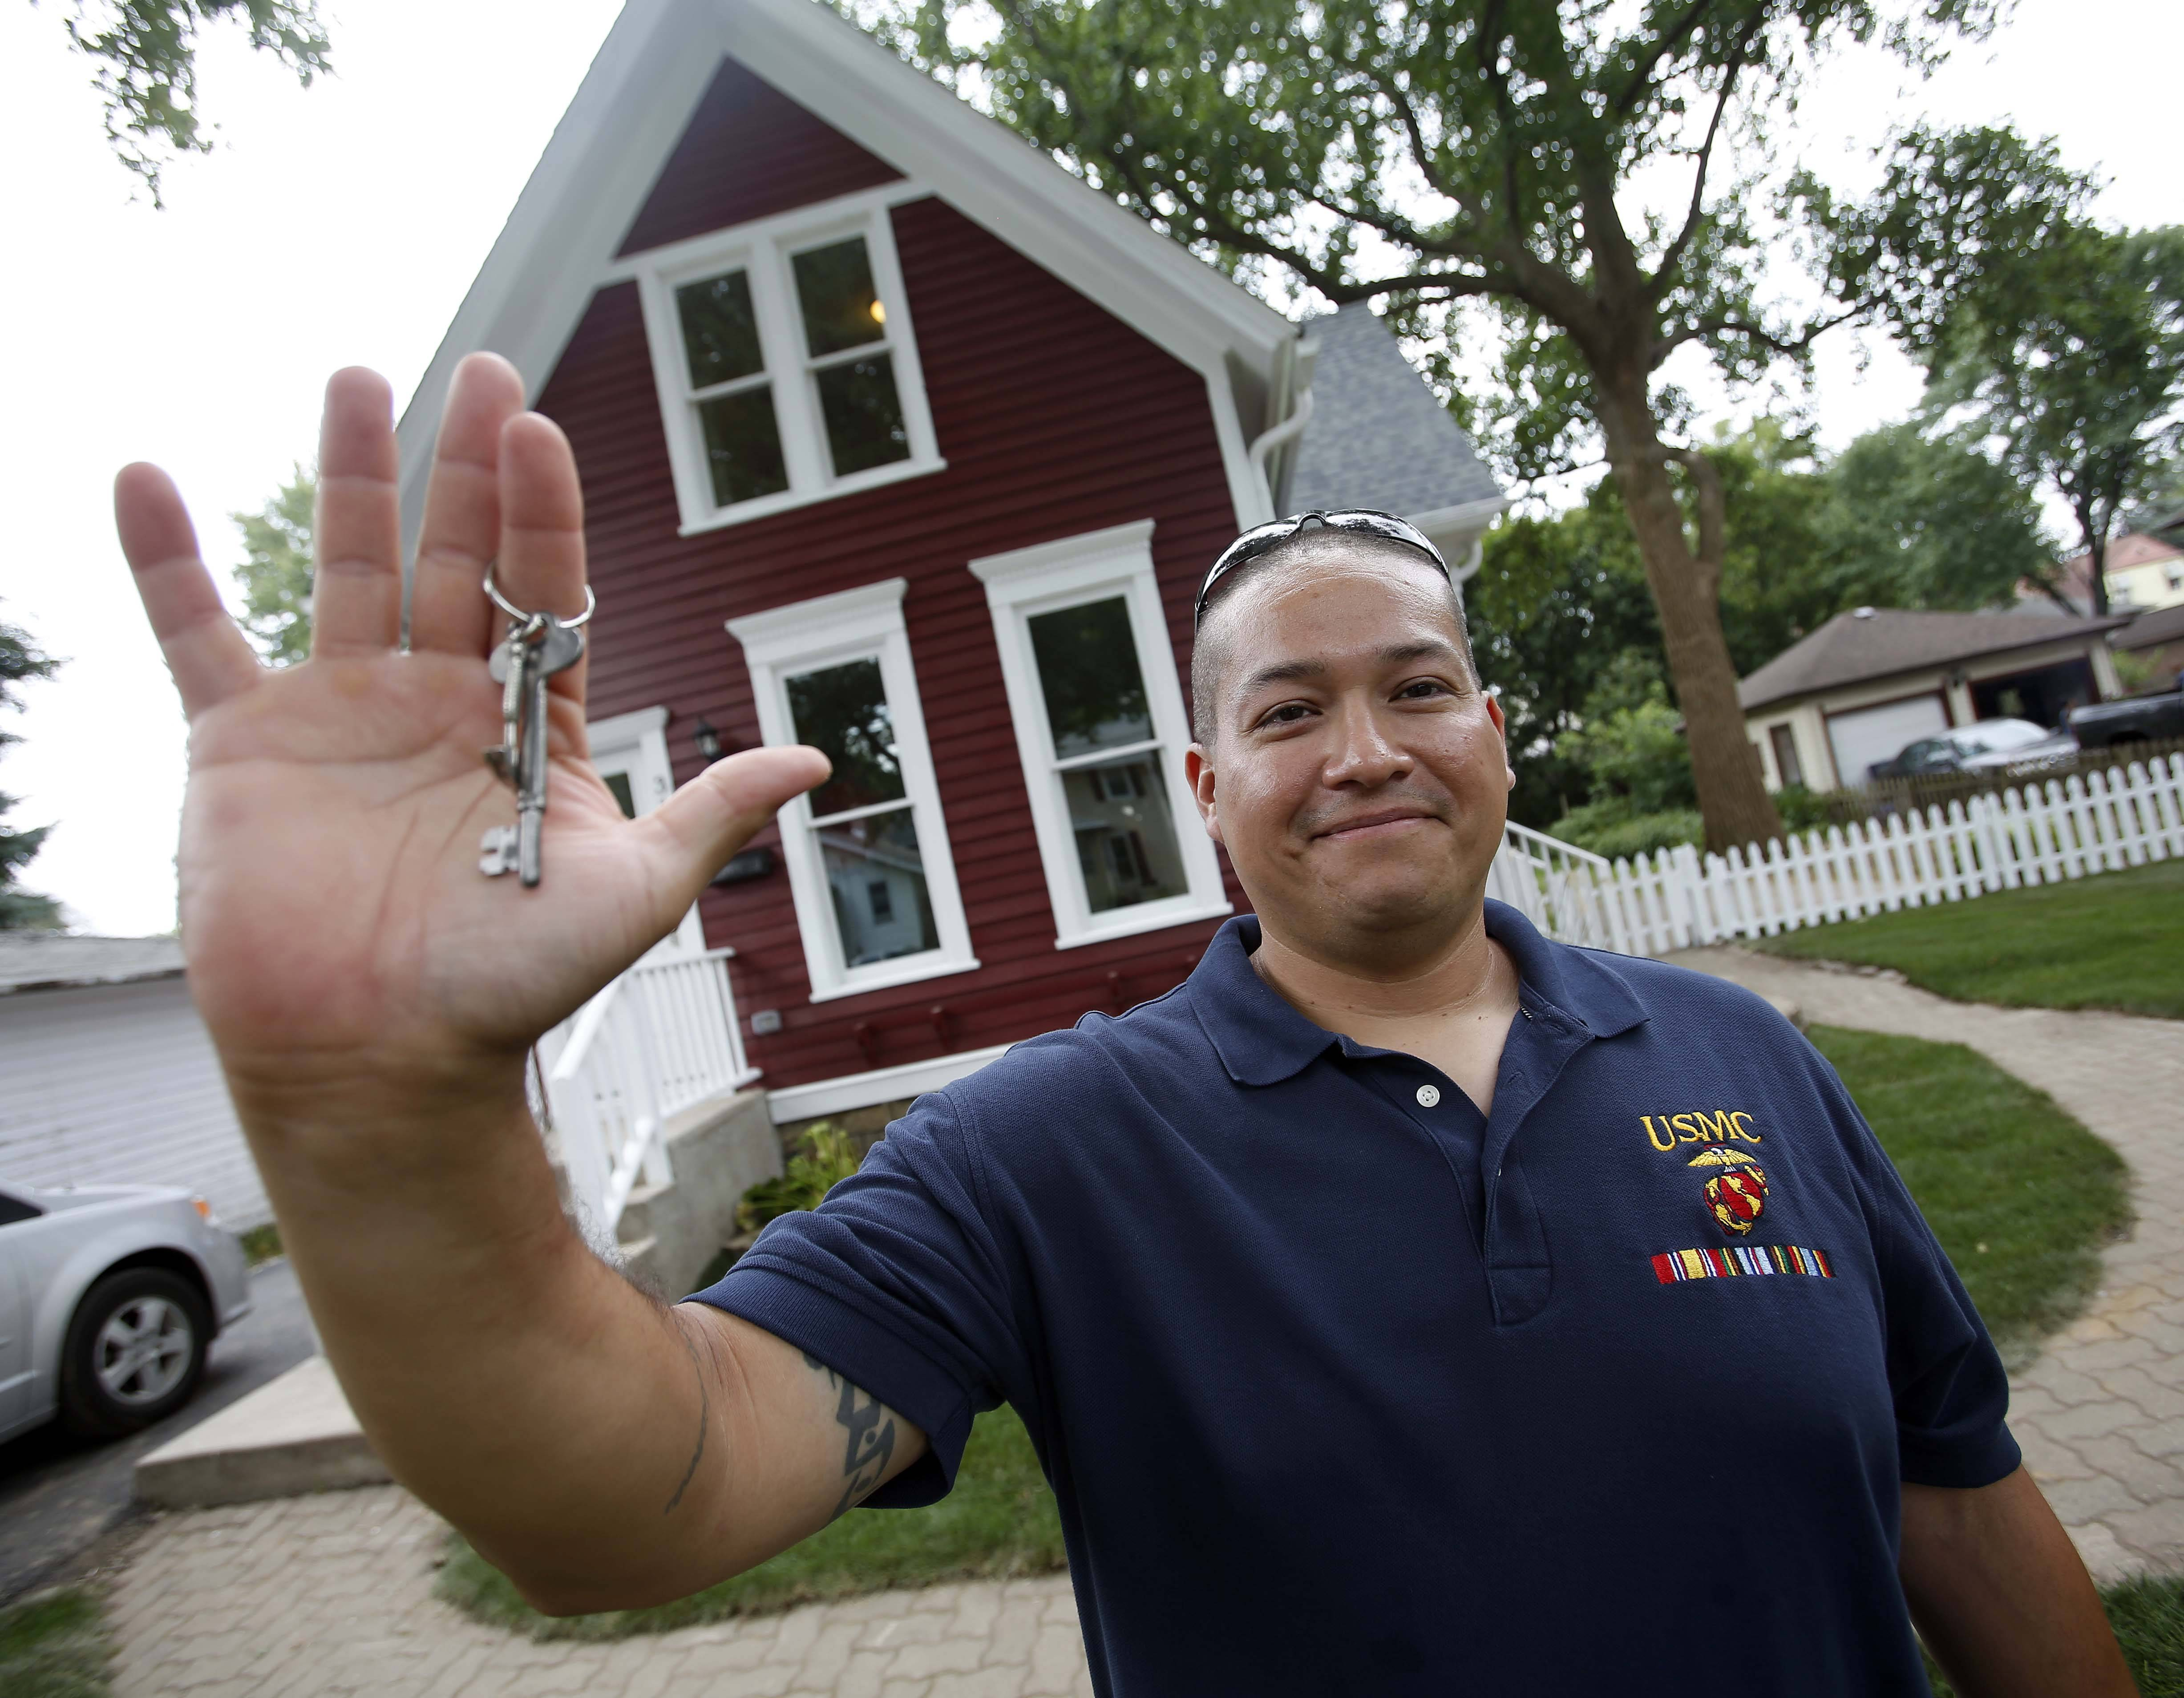 Roberto Cintora, a Marine Corps veteran who grew up in Elgin, proudly holds up his new keys outside his home Sunday. The Elgin native and his twin sons moved into the home Sunday after working with Habitat for Humanity of Northern Fox Valley to rehab it.